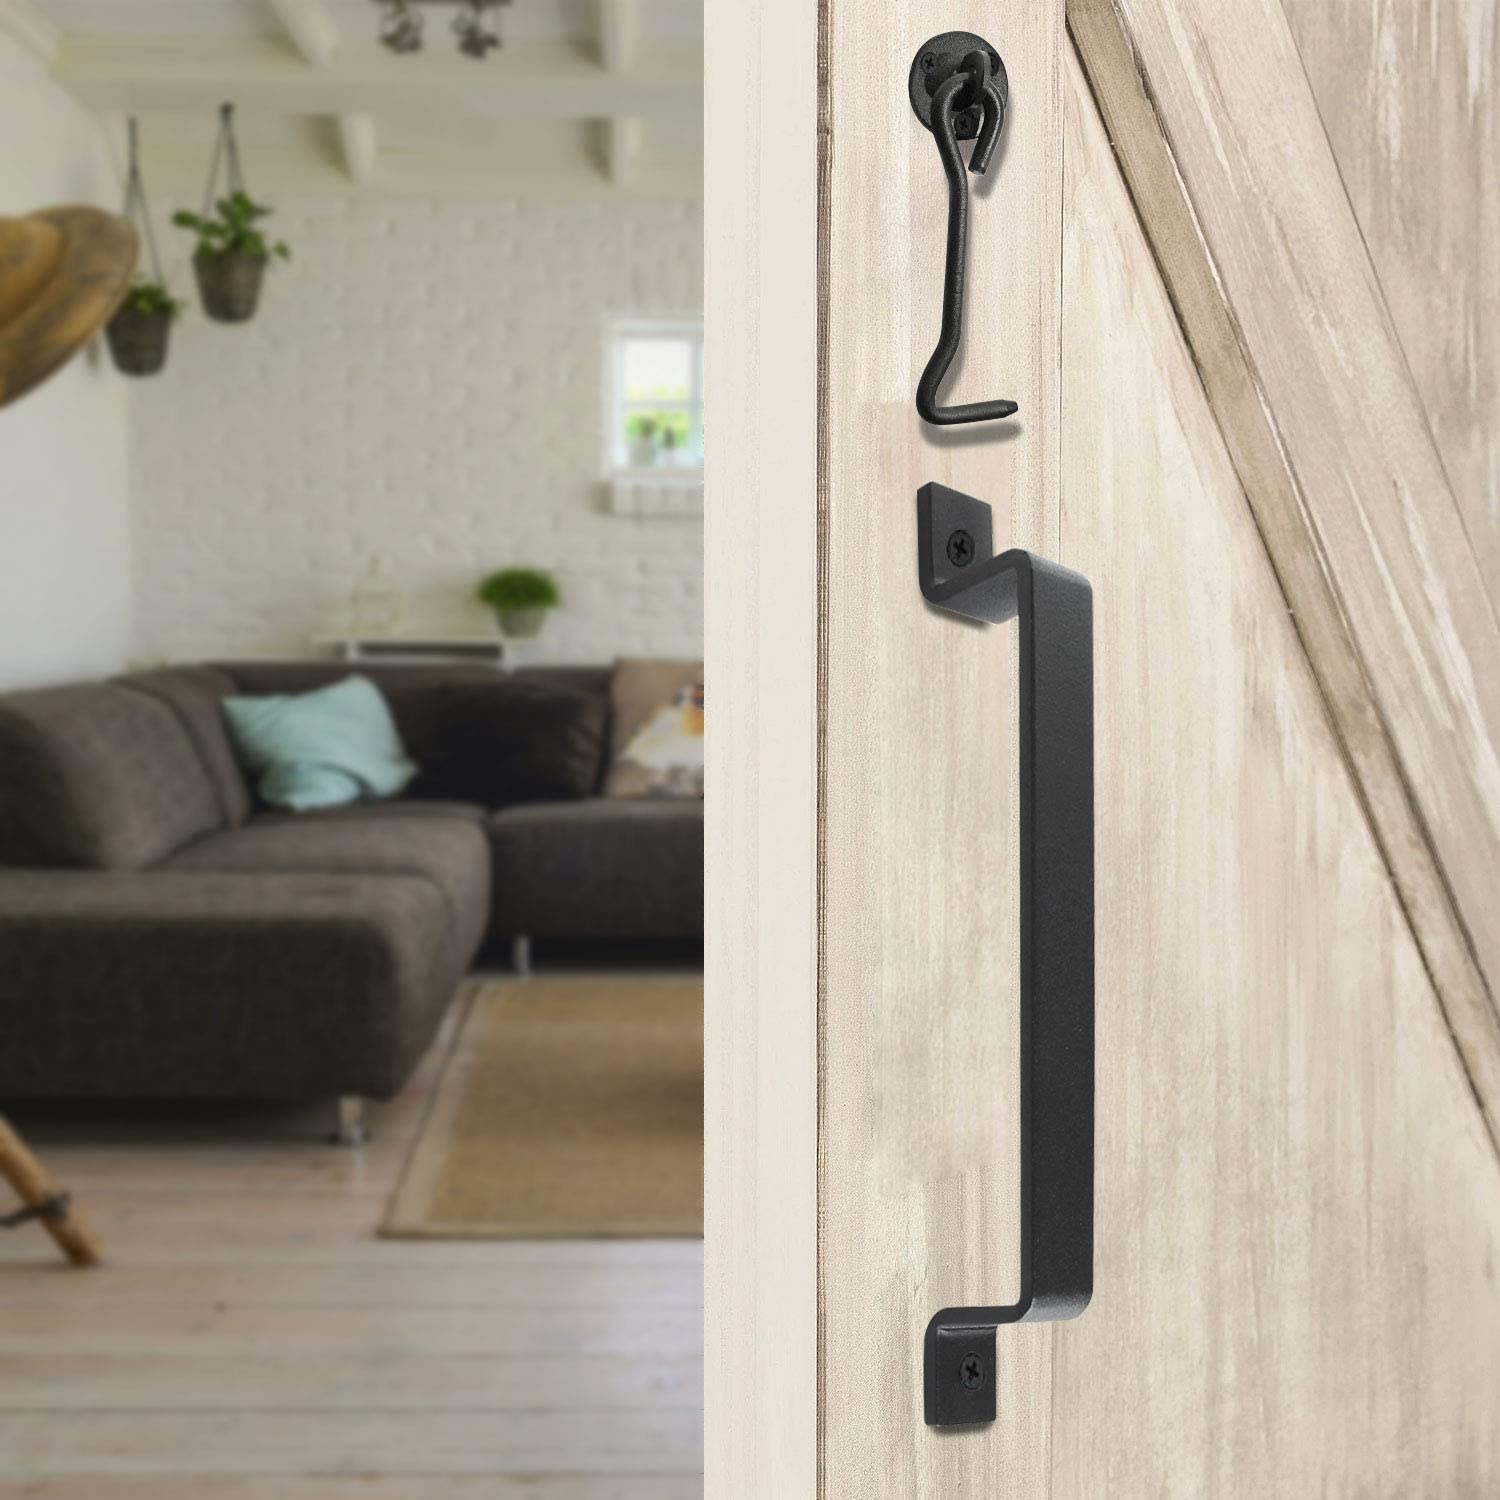 SDGINA Barn Door Handles 2 Pack 10 Inch Black Gate Handle with Hook and Eye Latch for Sliding Barn Doors Gates Garage Shed Fence